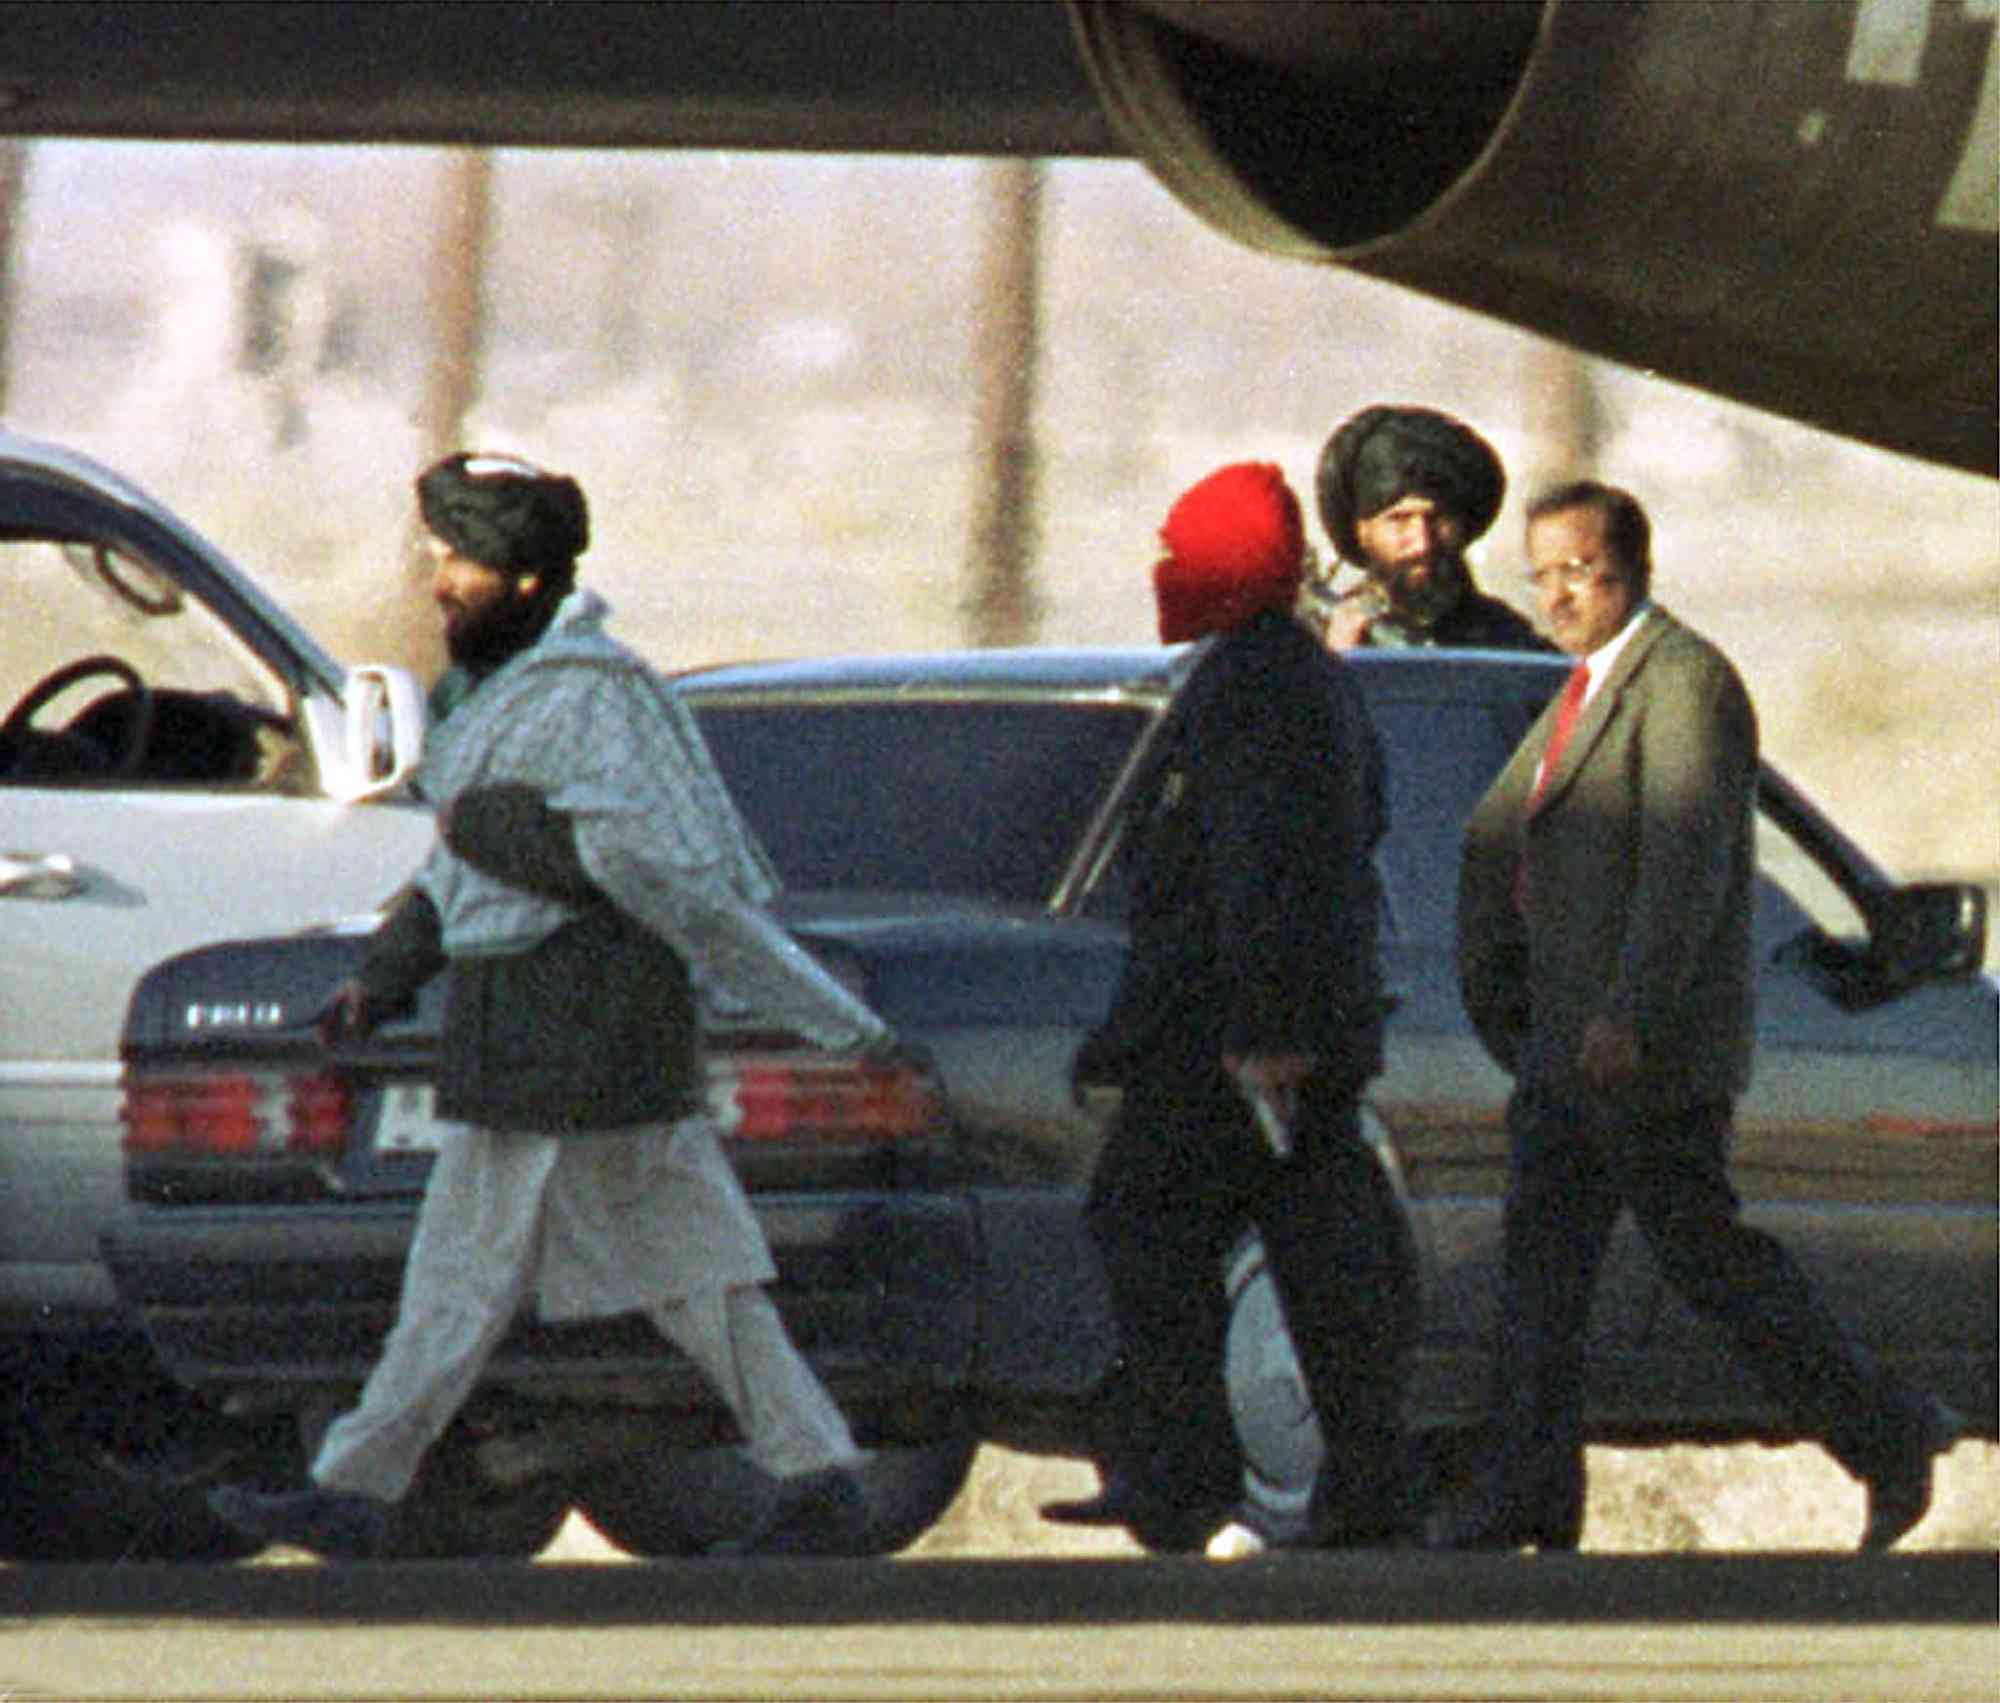 A masked hijacker carrying a pistol walks with a member of the Afghan Taliban (left) and Ajit Doval (right), then India's Intelligence Bureau chief, in Kandahar airport, in Afghanistan, on December 31, 1999.